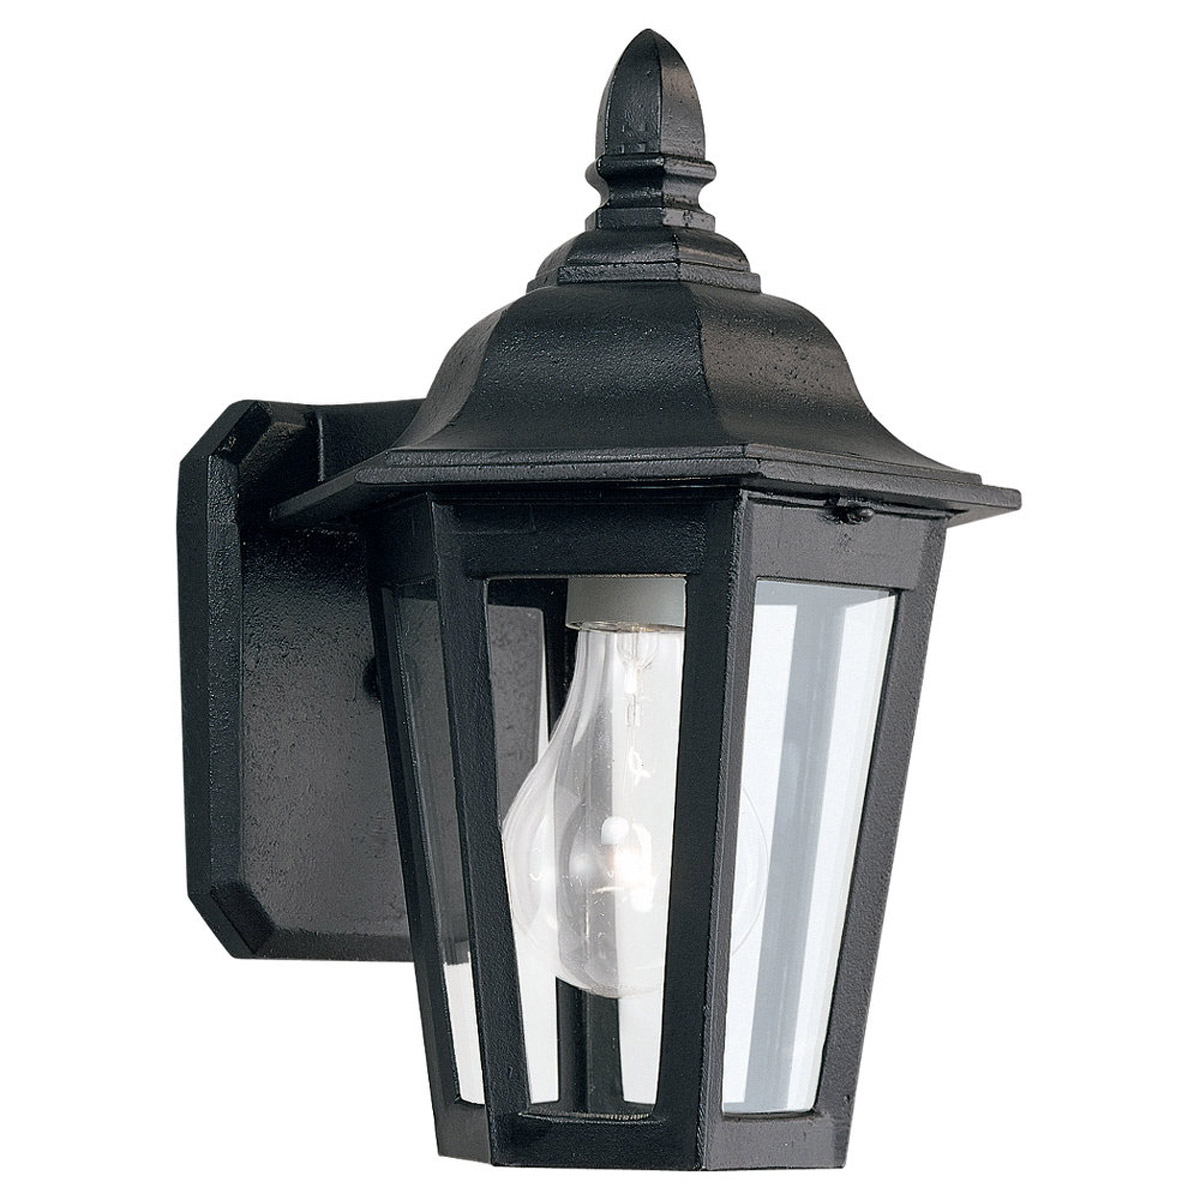 Sea Gull Lighting Brentwood 1 Light Outdoor Wall Lantern in Black 8822-12